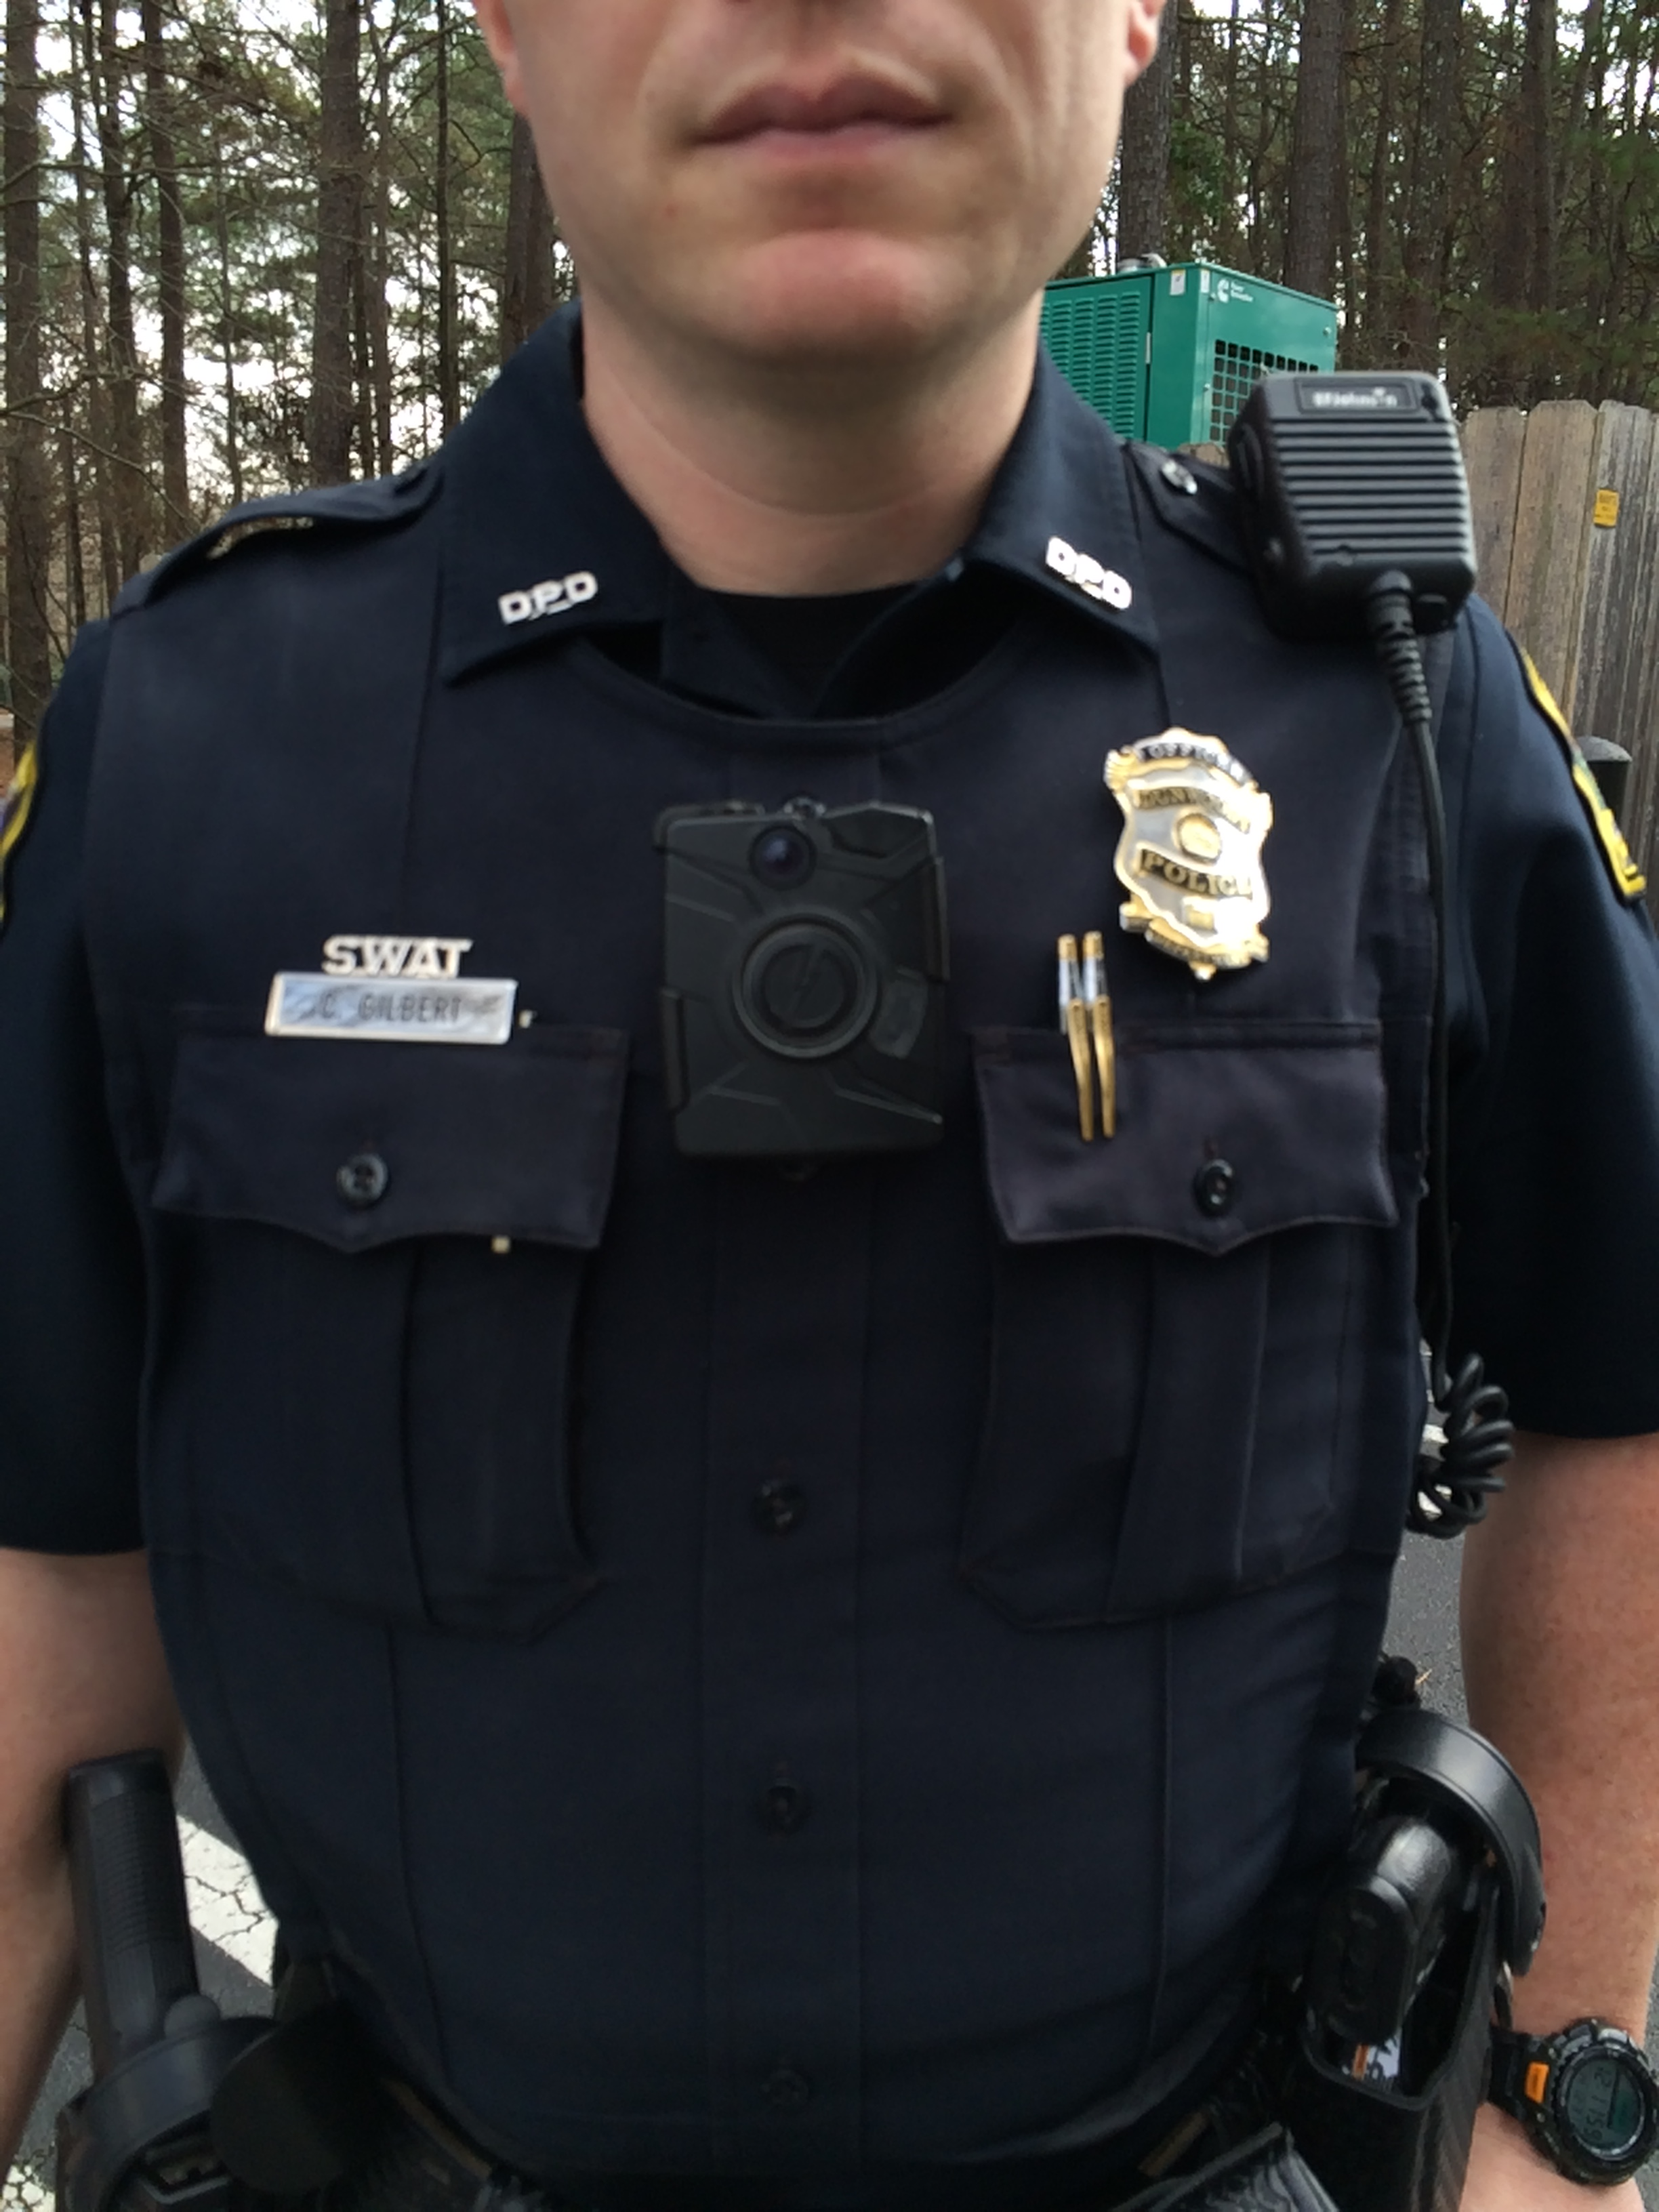 Some local police considering adopting on-body cameras soon ...